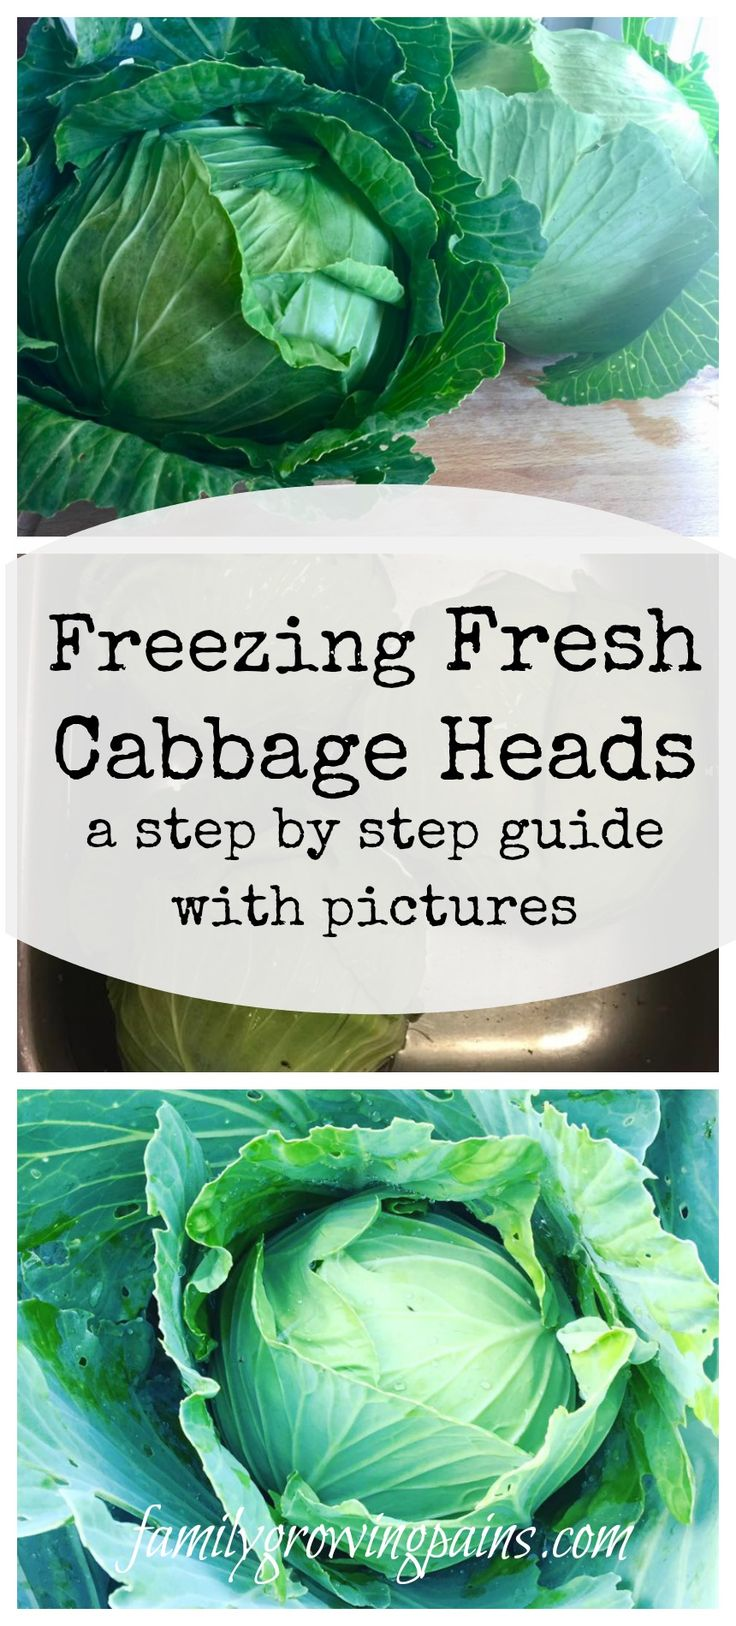 Freezing Fresh Cabbage Heads - a step by step guide  Do you want to preserve your fresh cabbage but can't stand sauerkraut? Cabbage freezes great! You can have fresh cabbage all winter long.